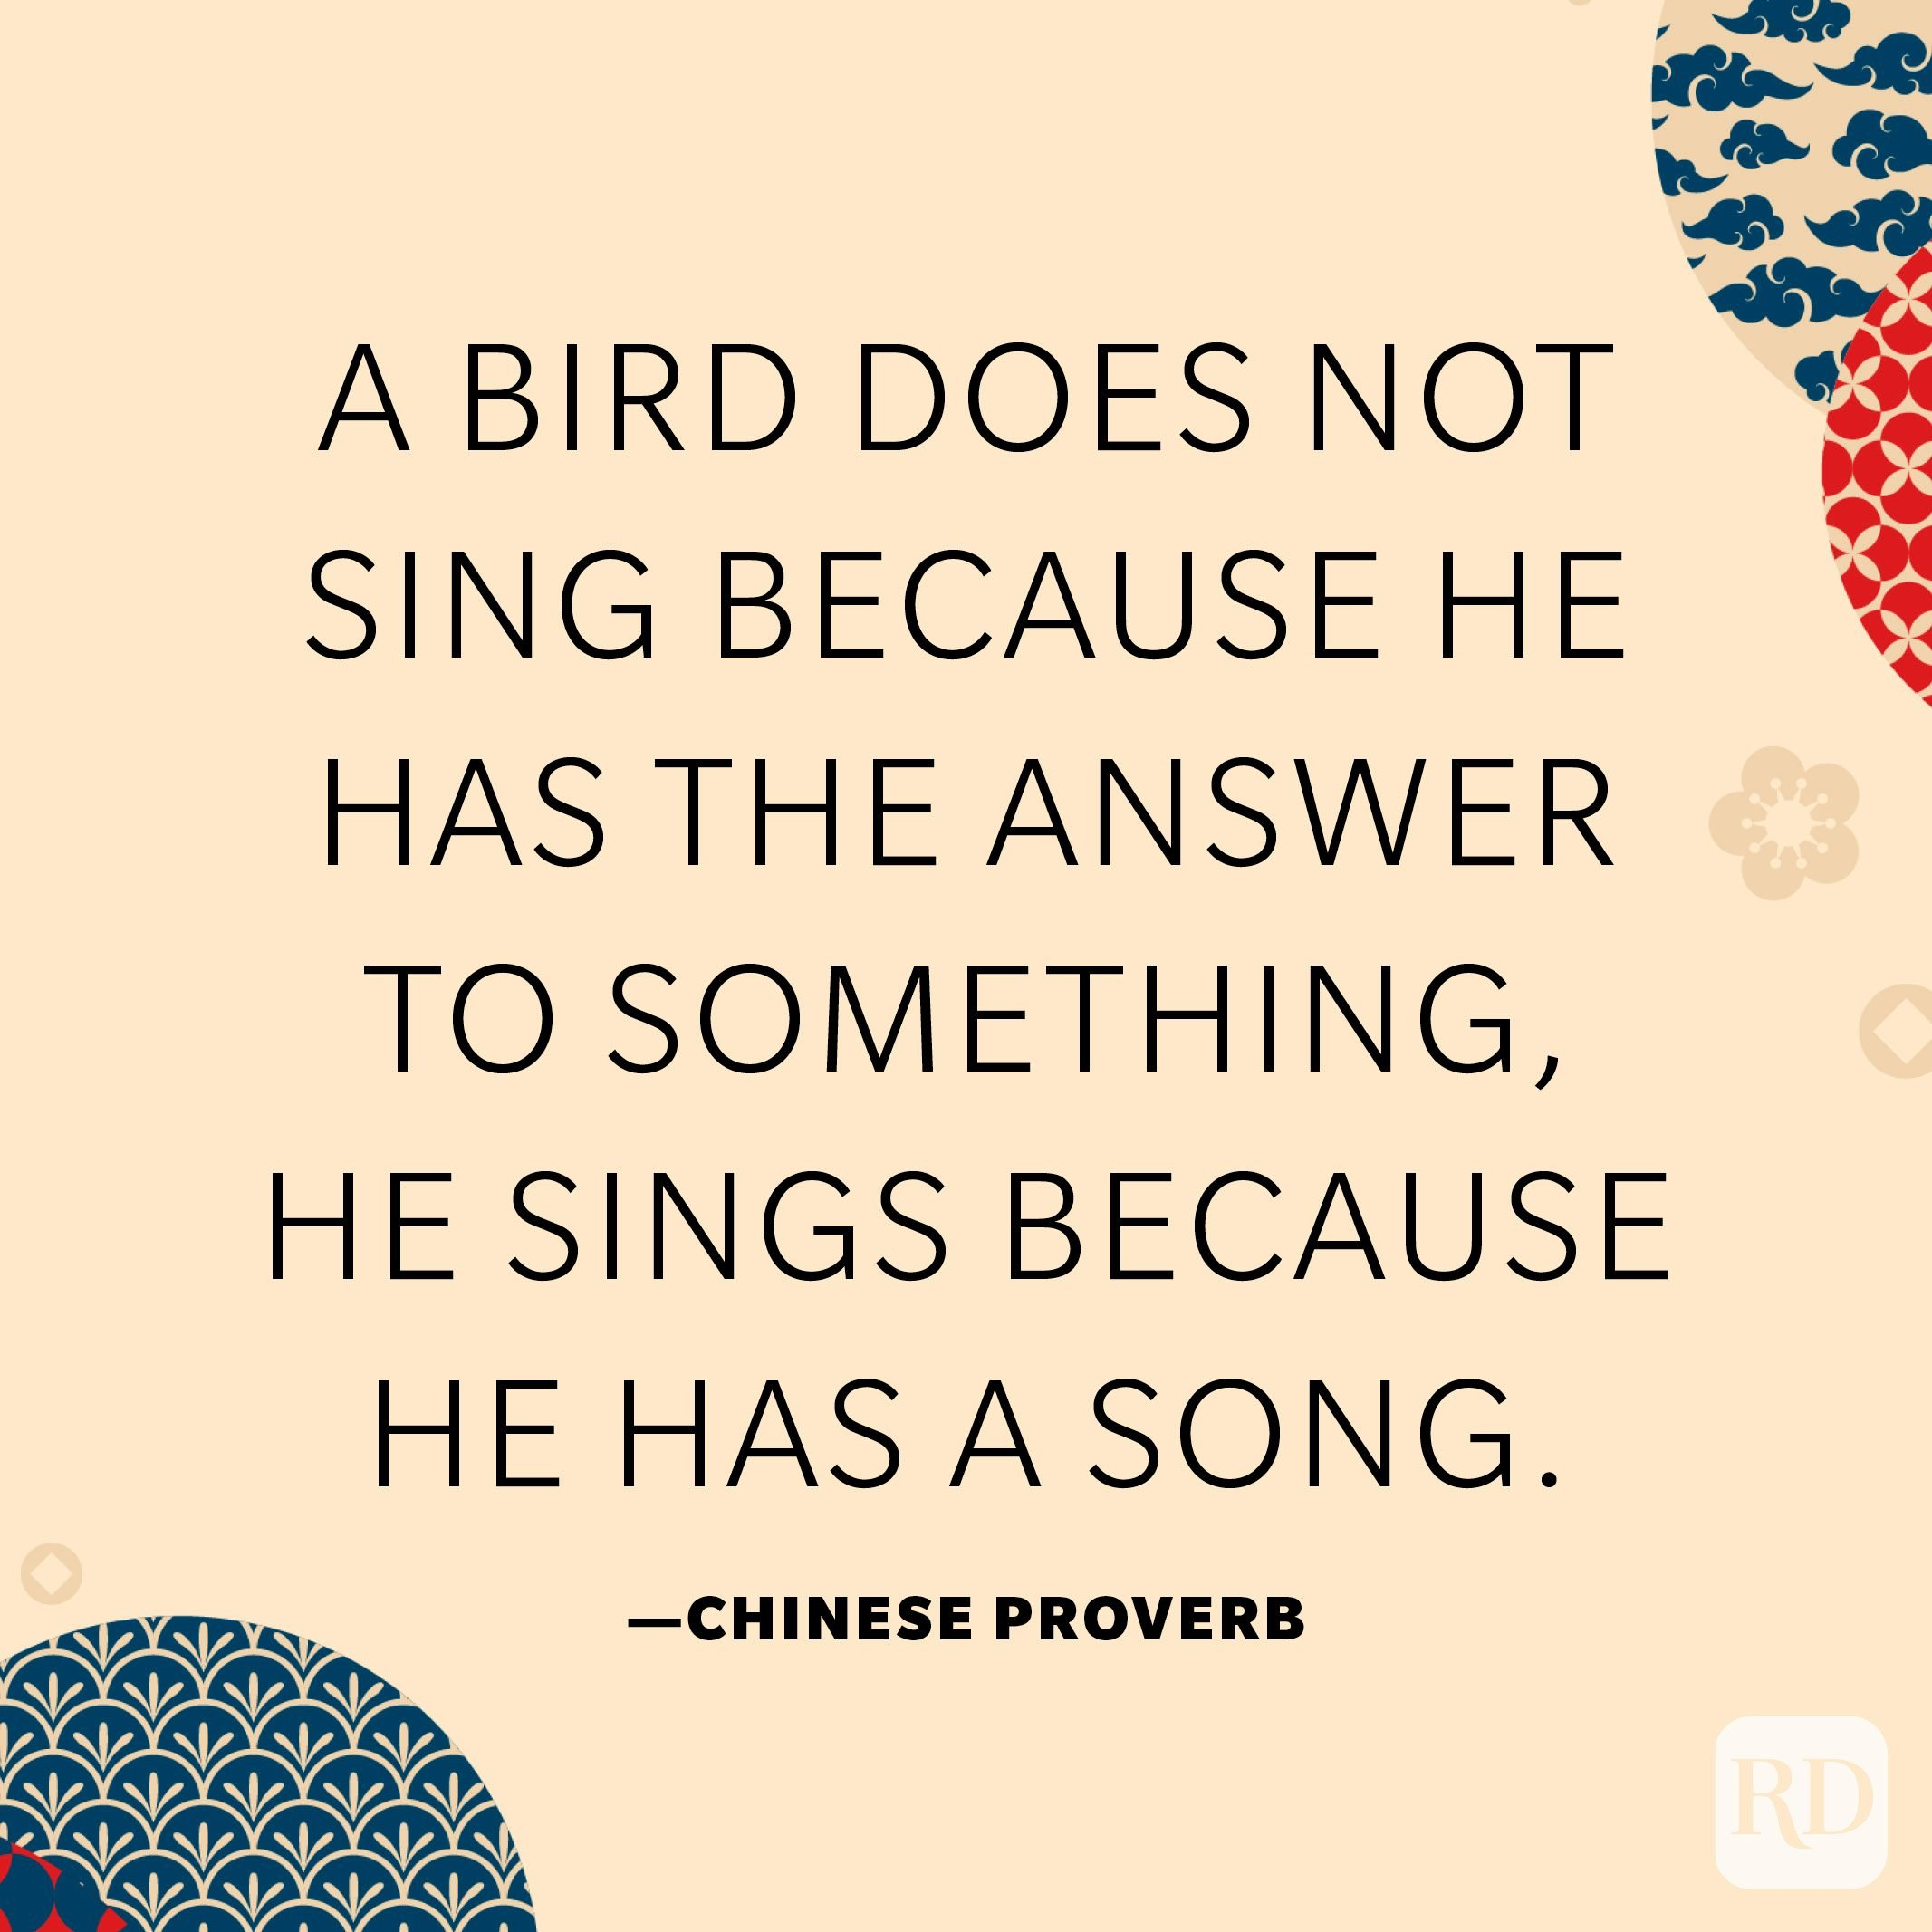 A bird does not sing because he has the answer to something, he sings because he has a song.